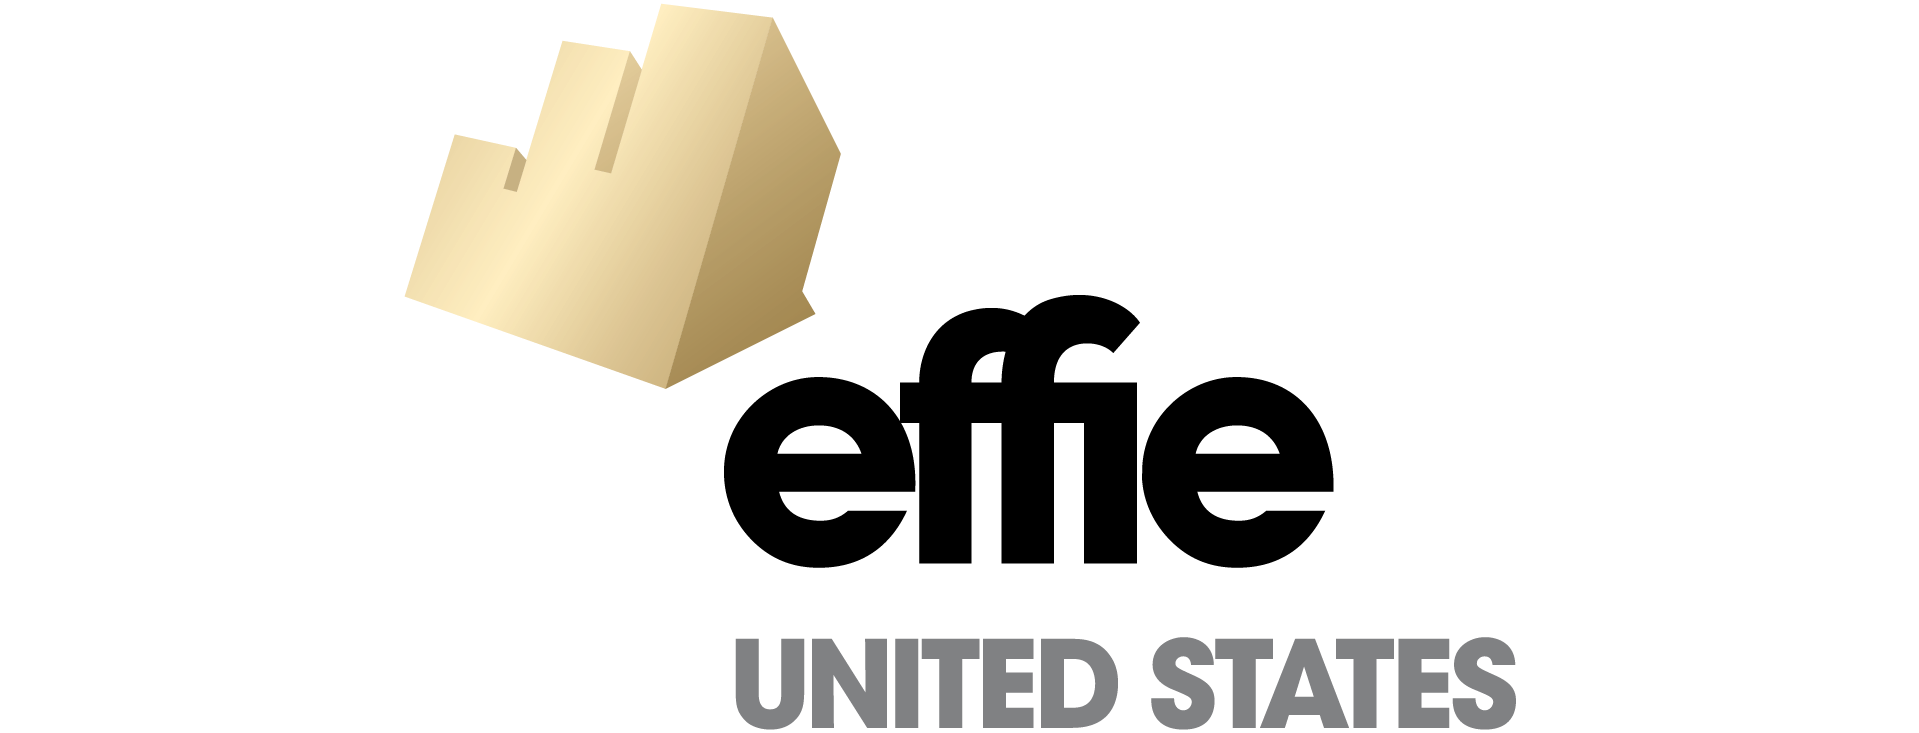 Effie 2020 Award US Gala logo